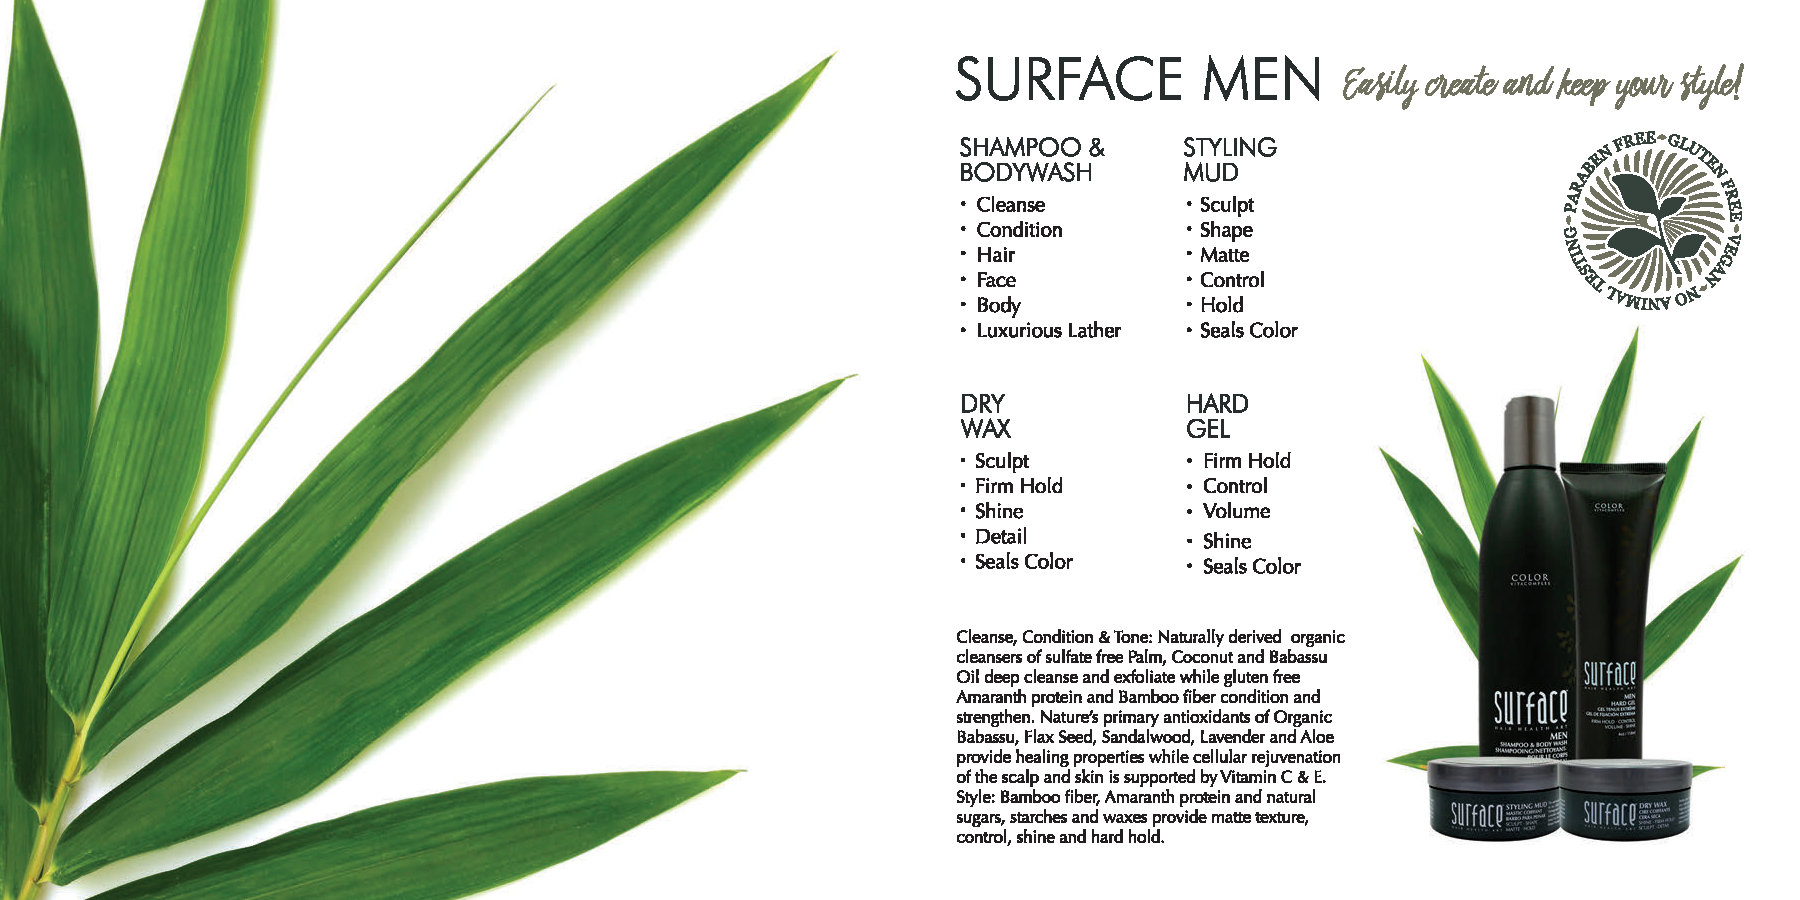 Surface Men Haircare Products